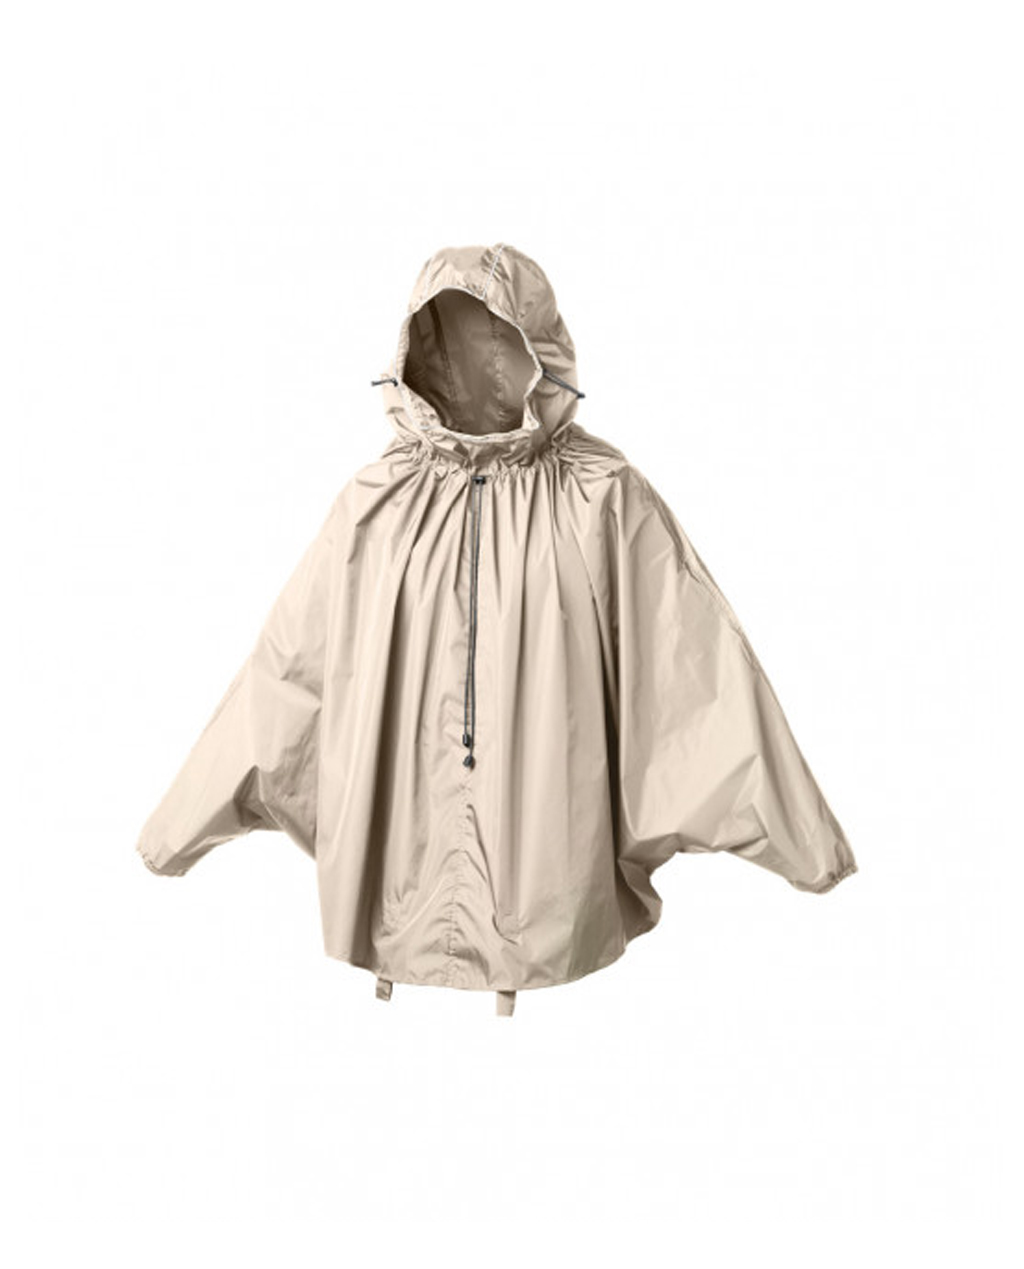 Brooks CAMBRIDGE STOWABLE RAIN CAPE - Sand